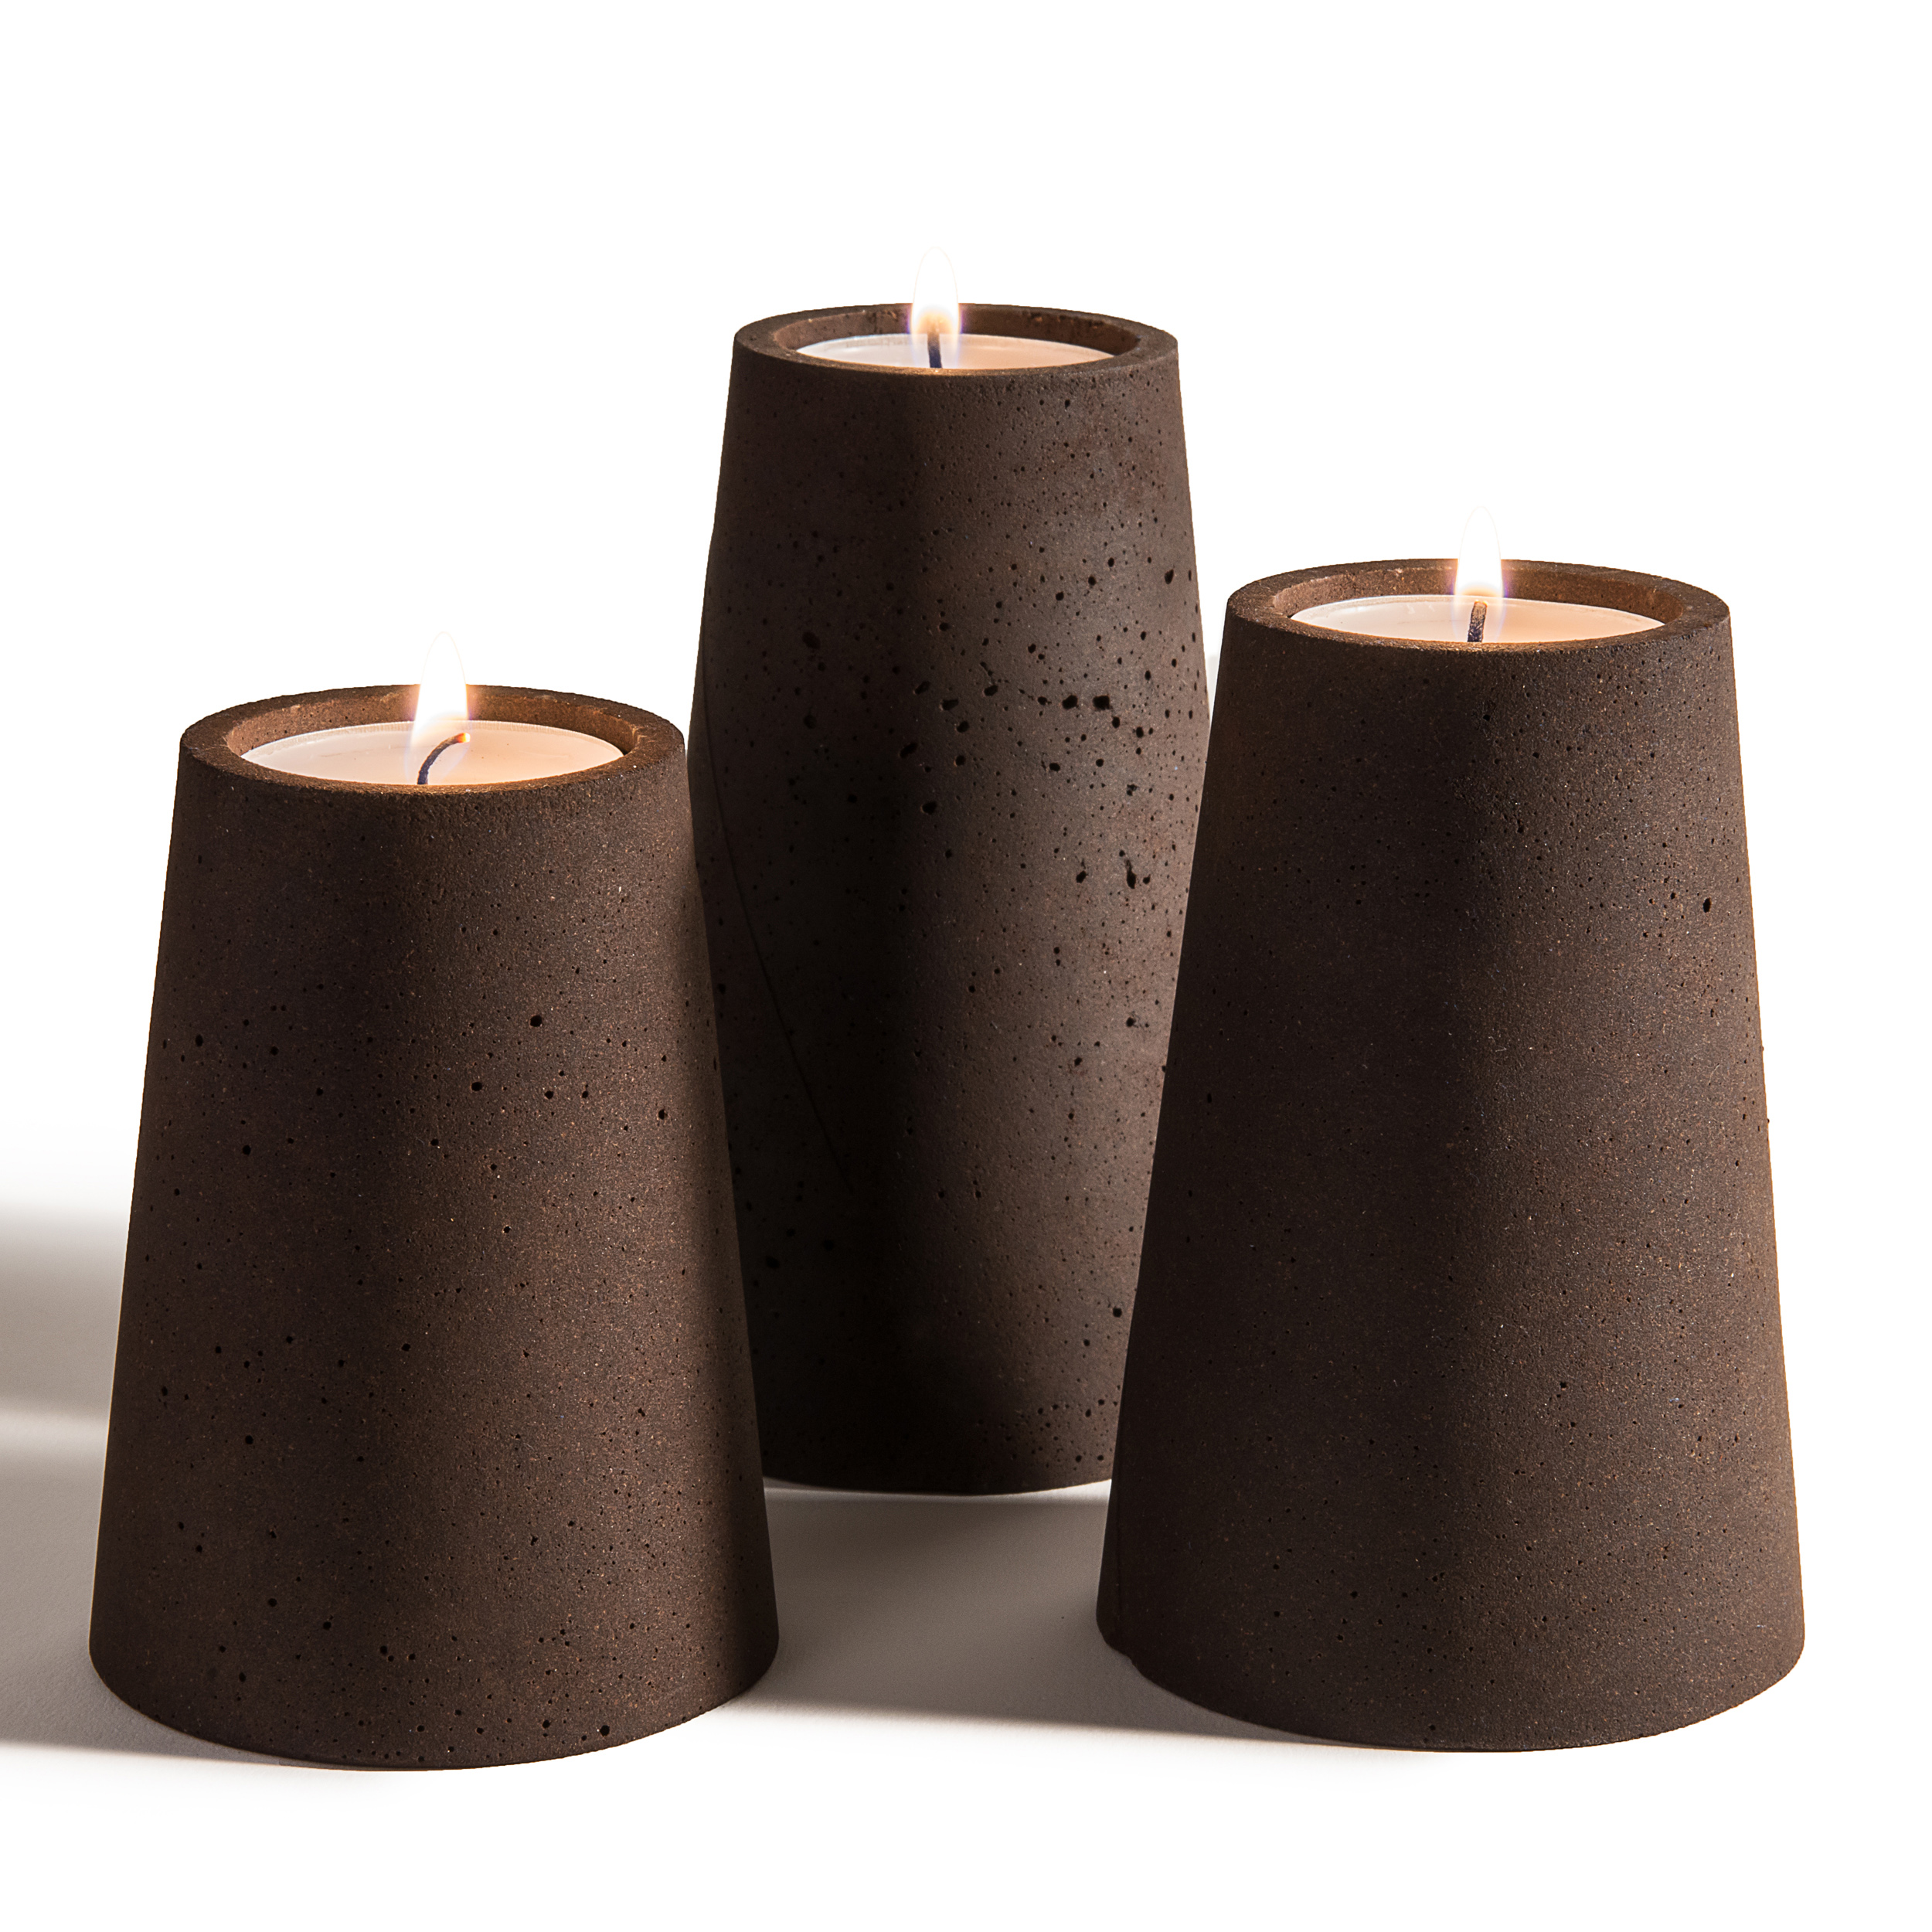 Buy Candles Online Ayane Set Of 3 Candles Buy Online Now At All Square Lighting